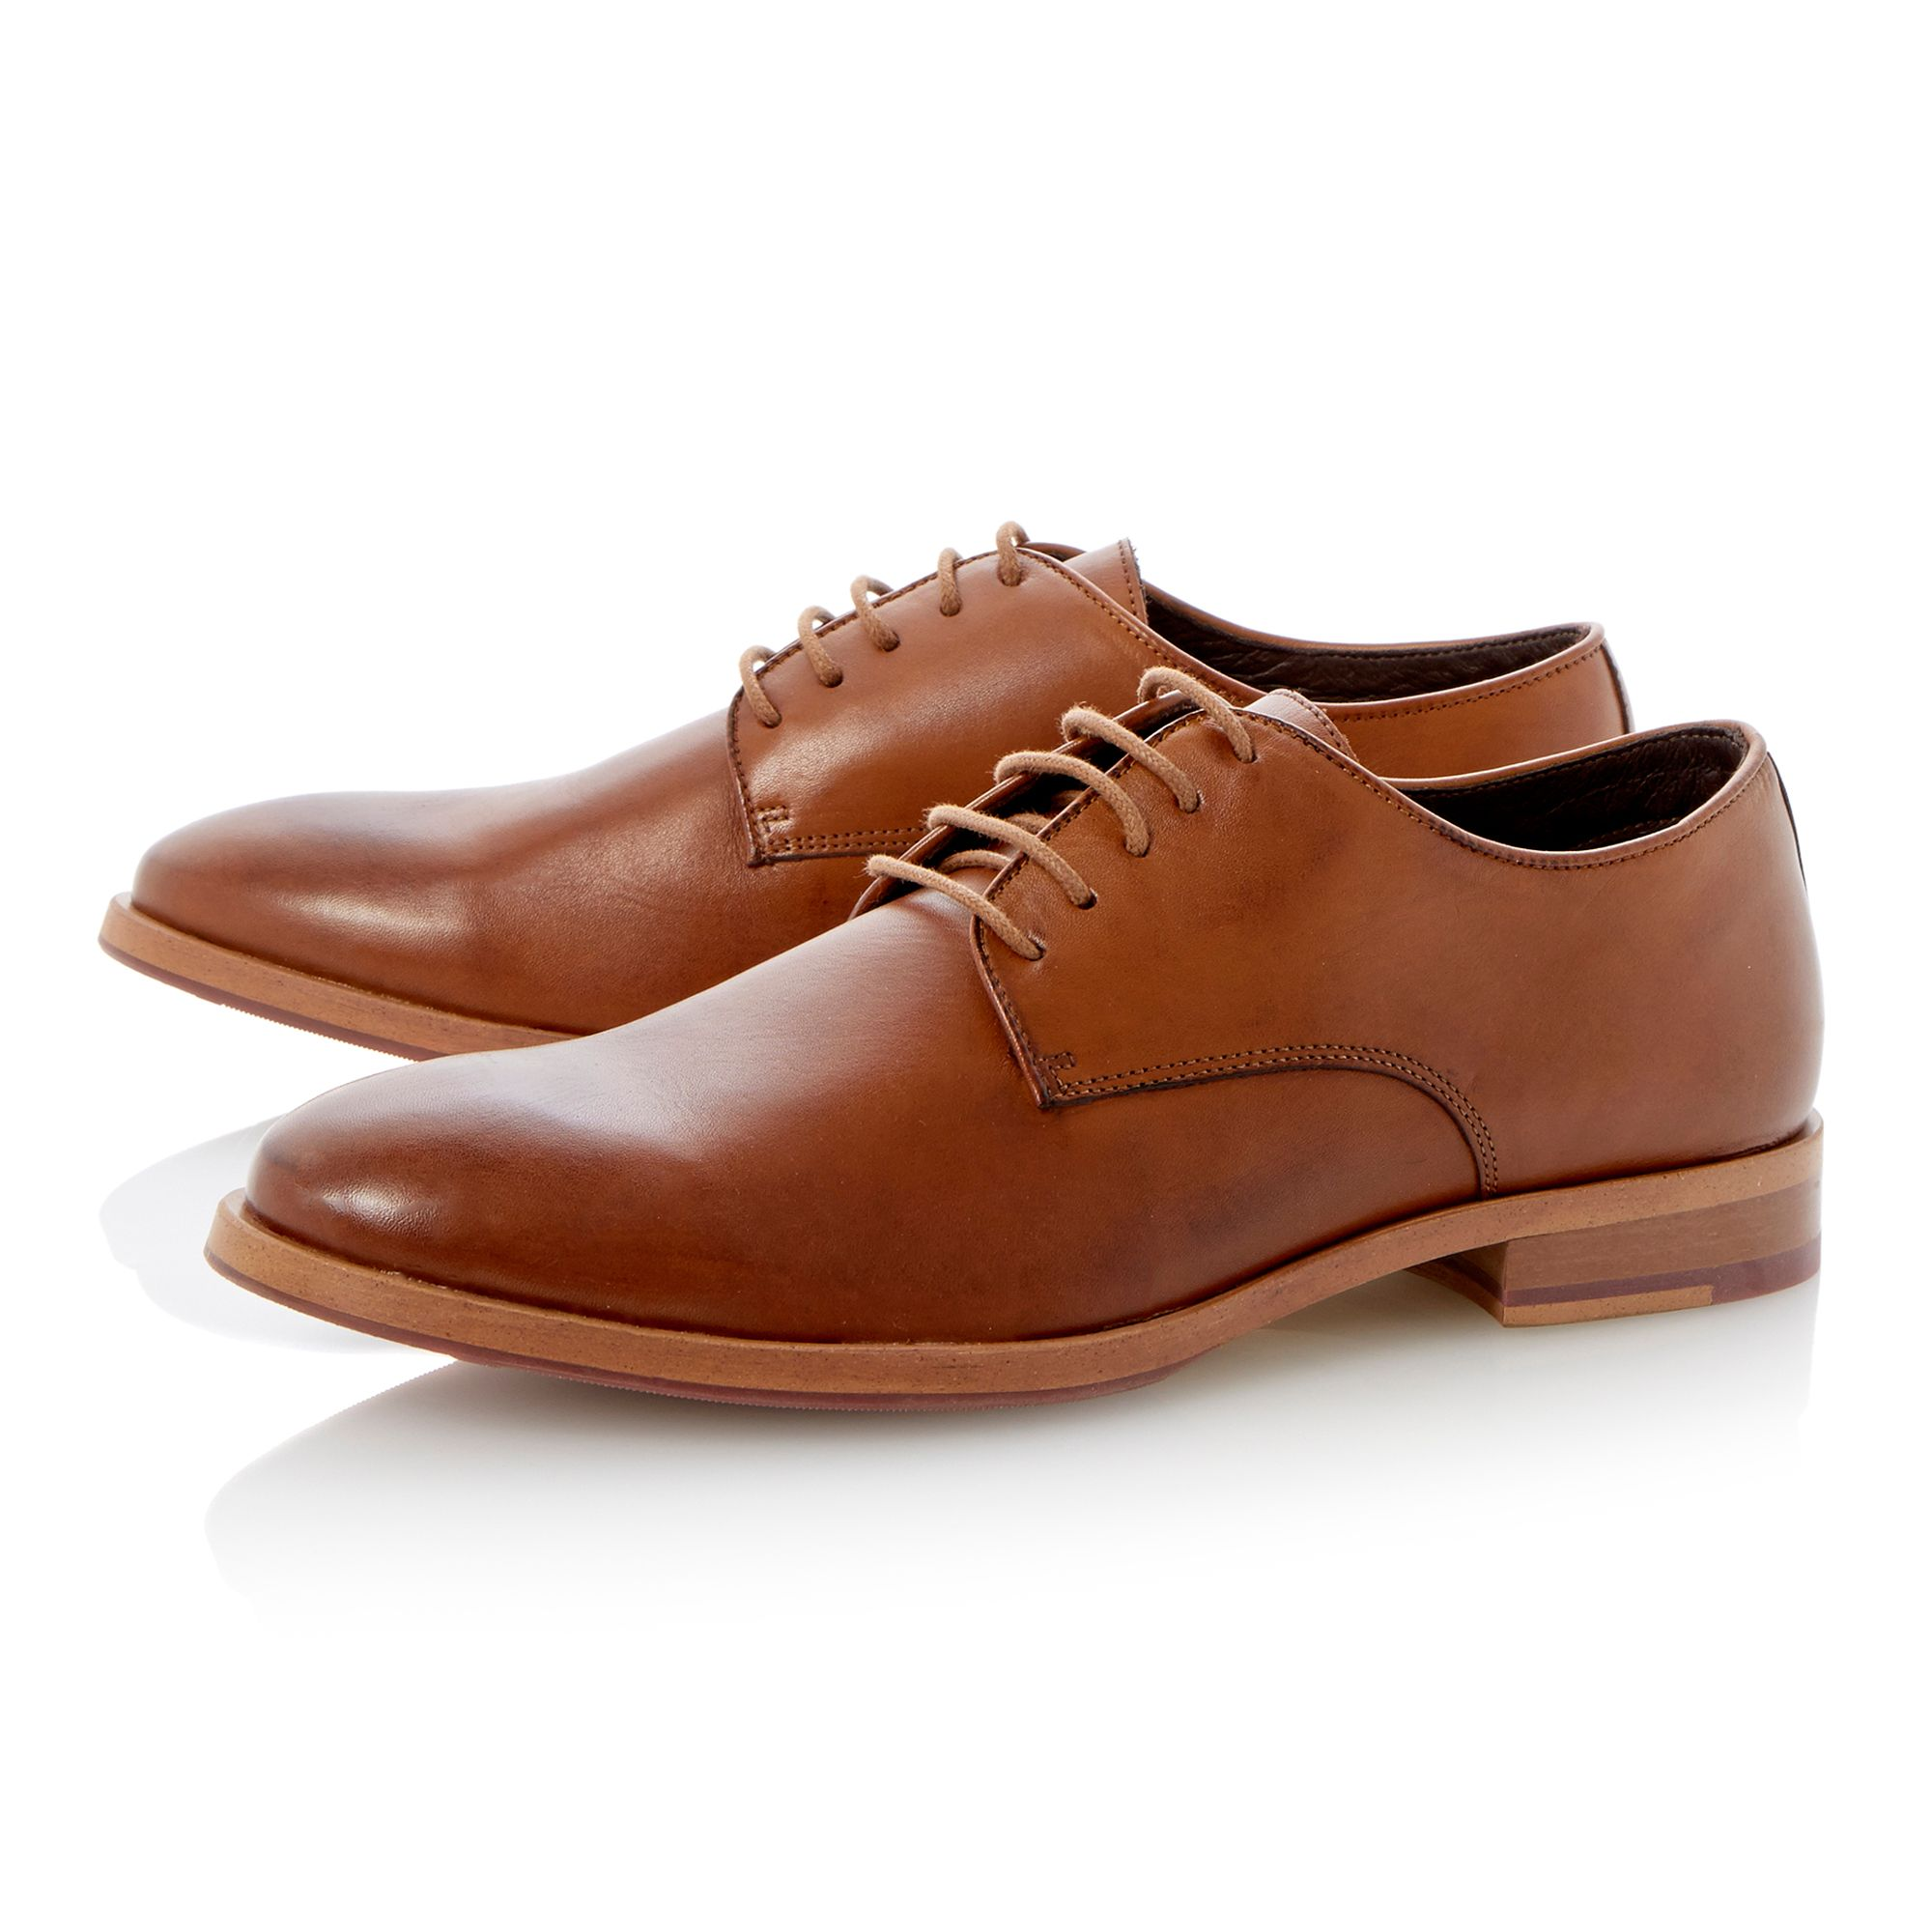 Randolph lace up plain gibson shoes